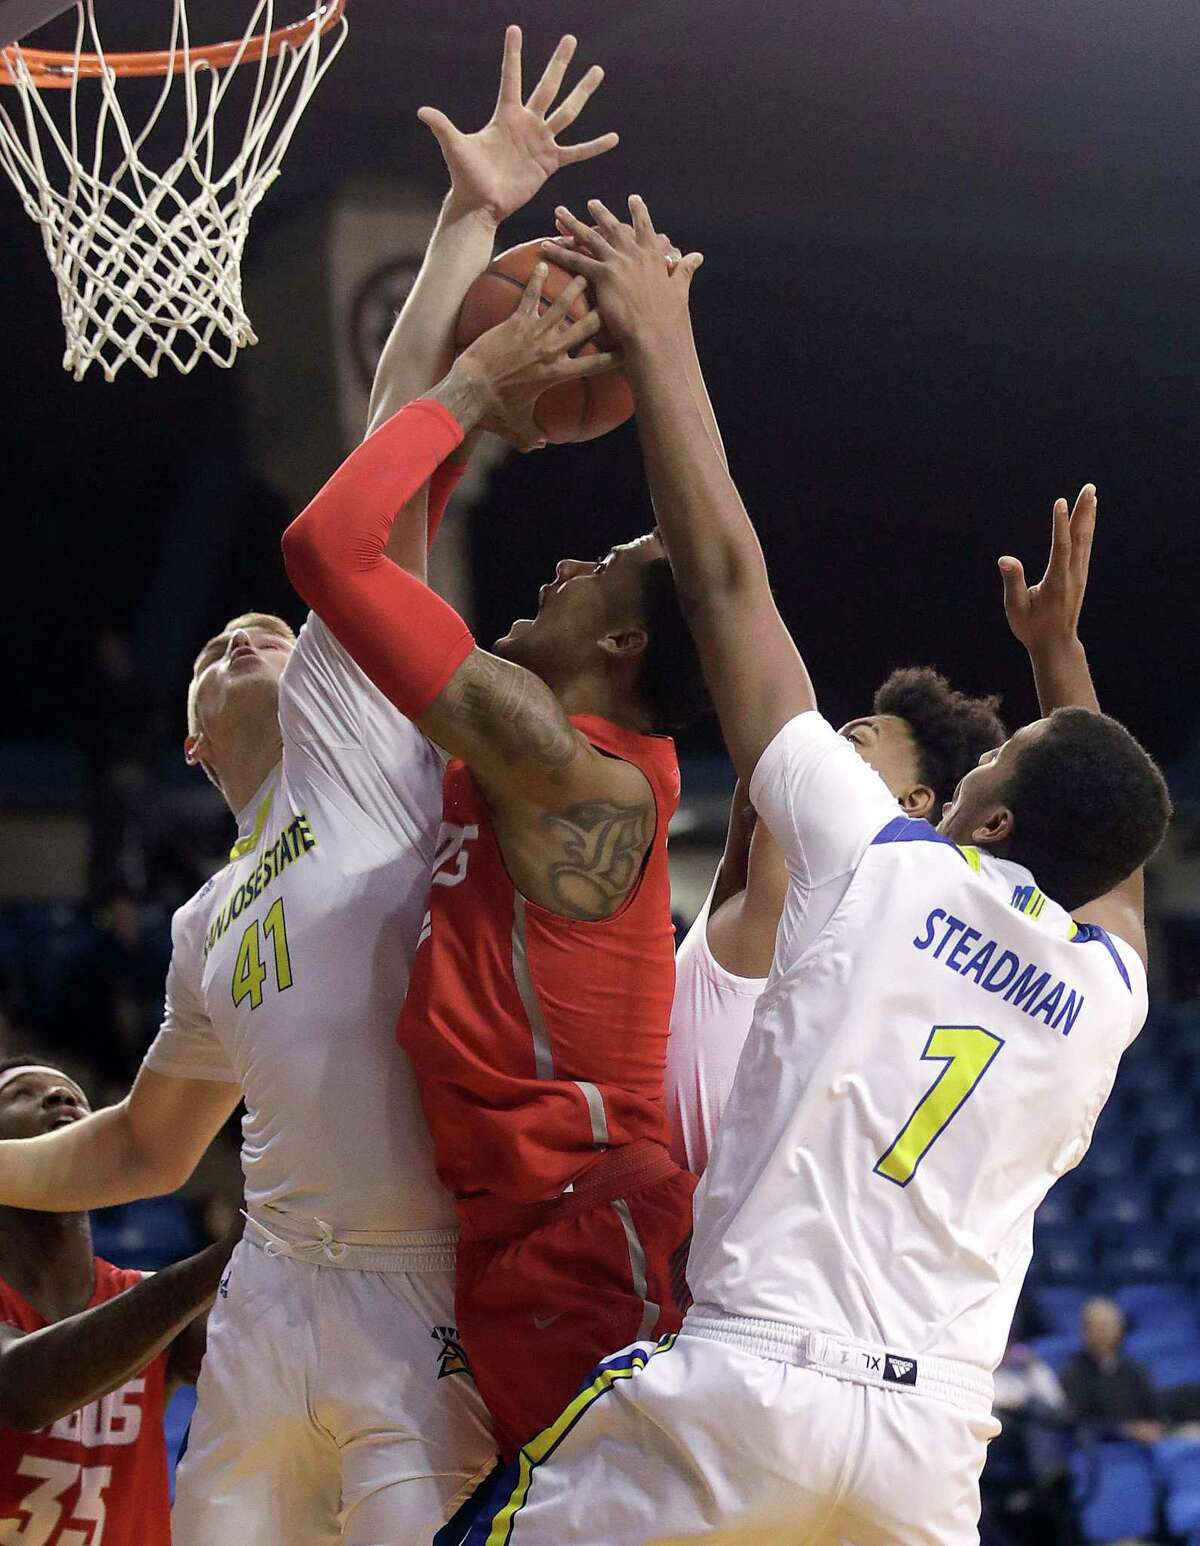 New Mexico forward Vance Jackson, center, shoots between San Jose State center Ashtin Chastain (41) and forward Michael Steadman (1) during a 2019 game.